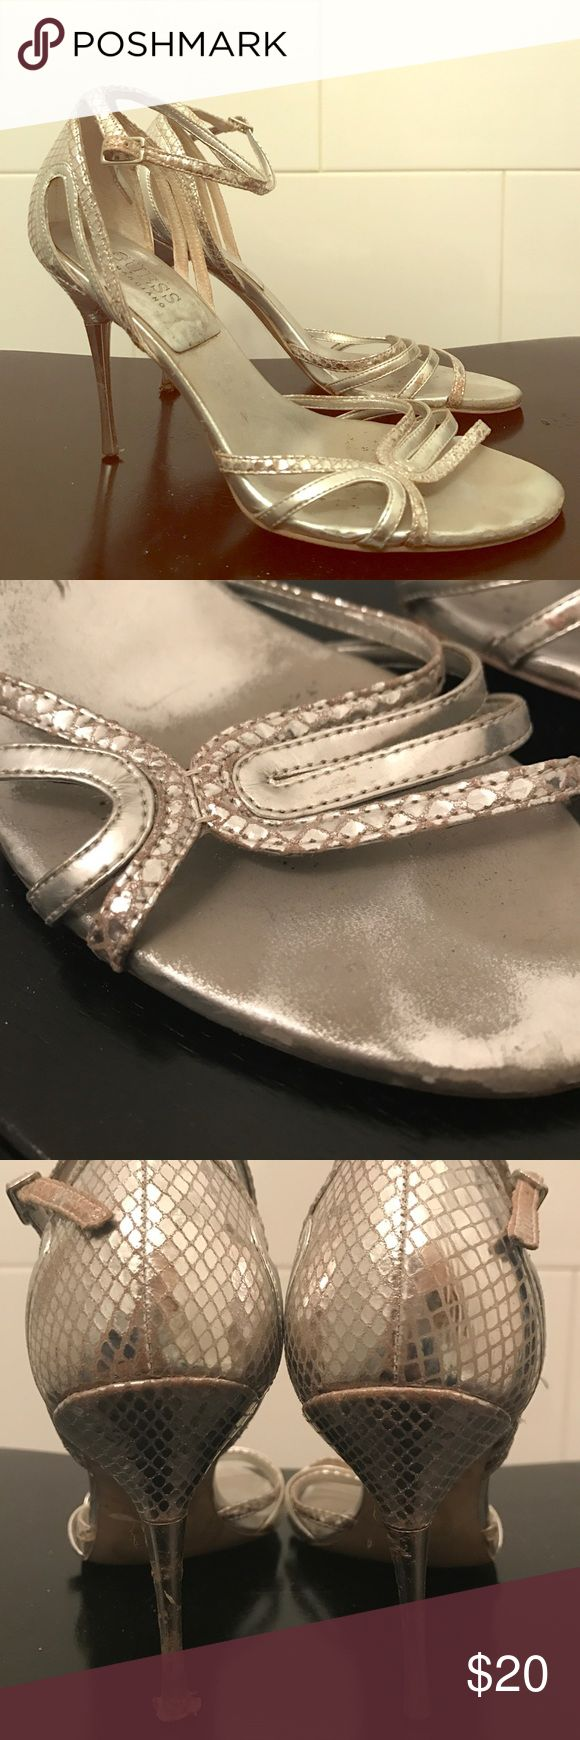 Silver Strappy Sandals Every gal needs a pair. Skinny sturdy heels, delicate straps. Guess Shoes Heels